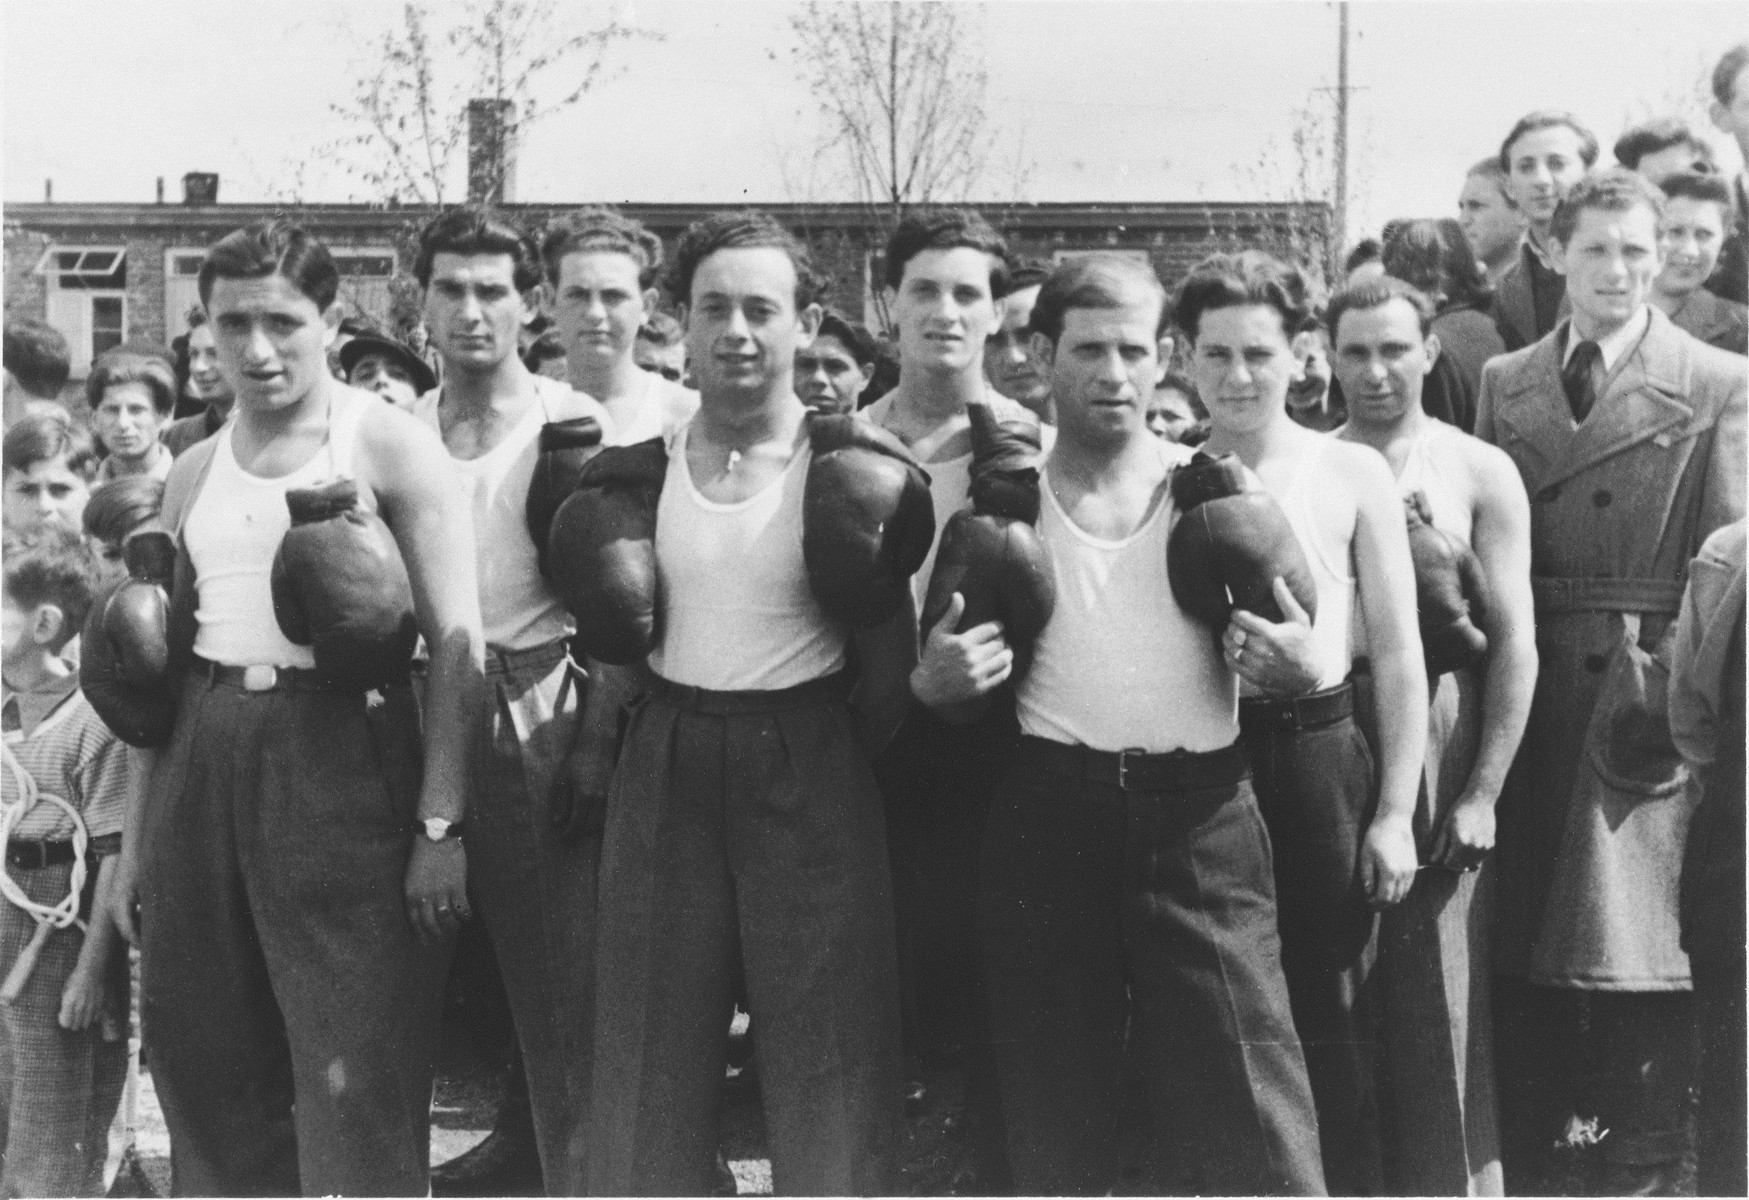 Group portrait of the members of the Zeilsheim displaced persons' camp boxing team.